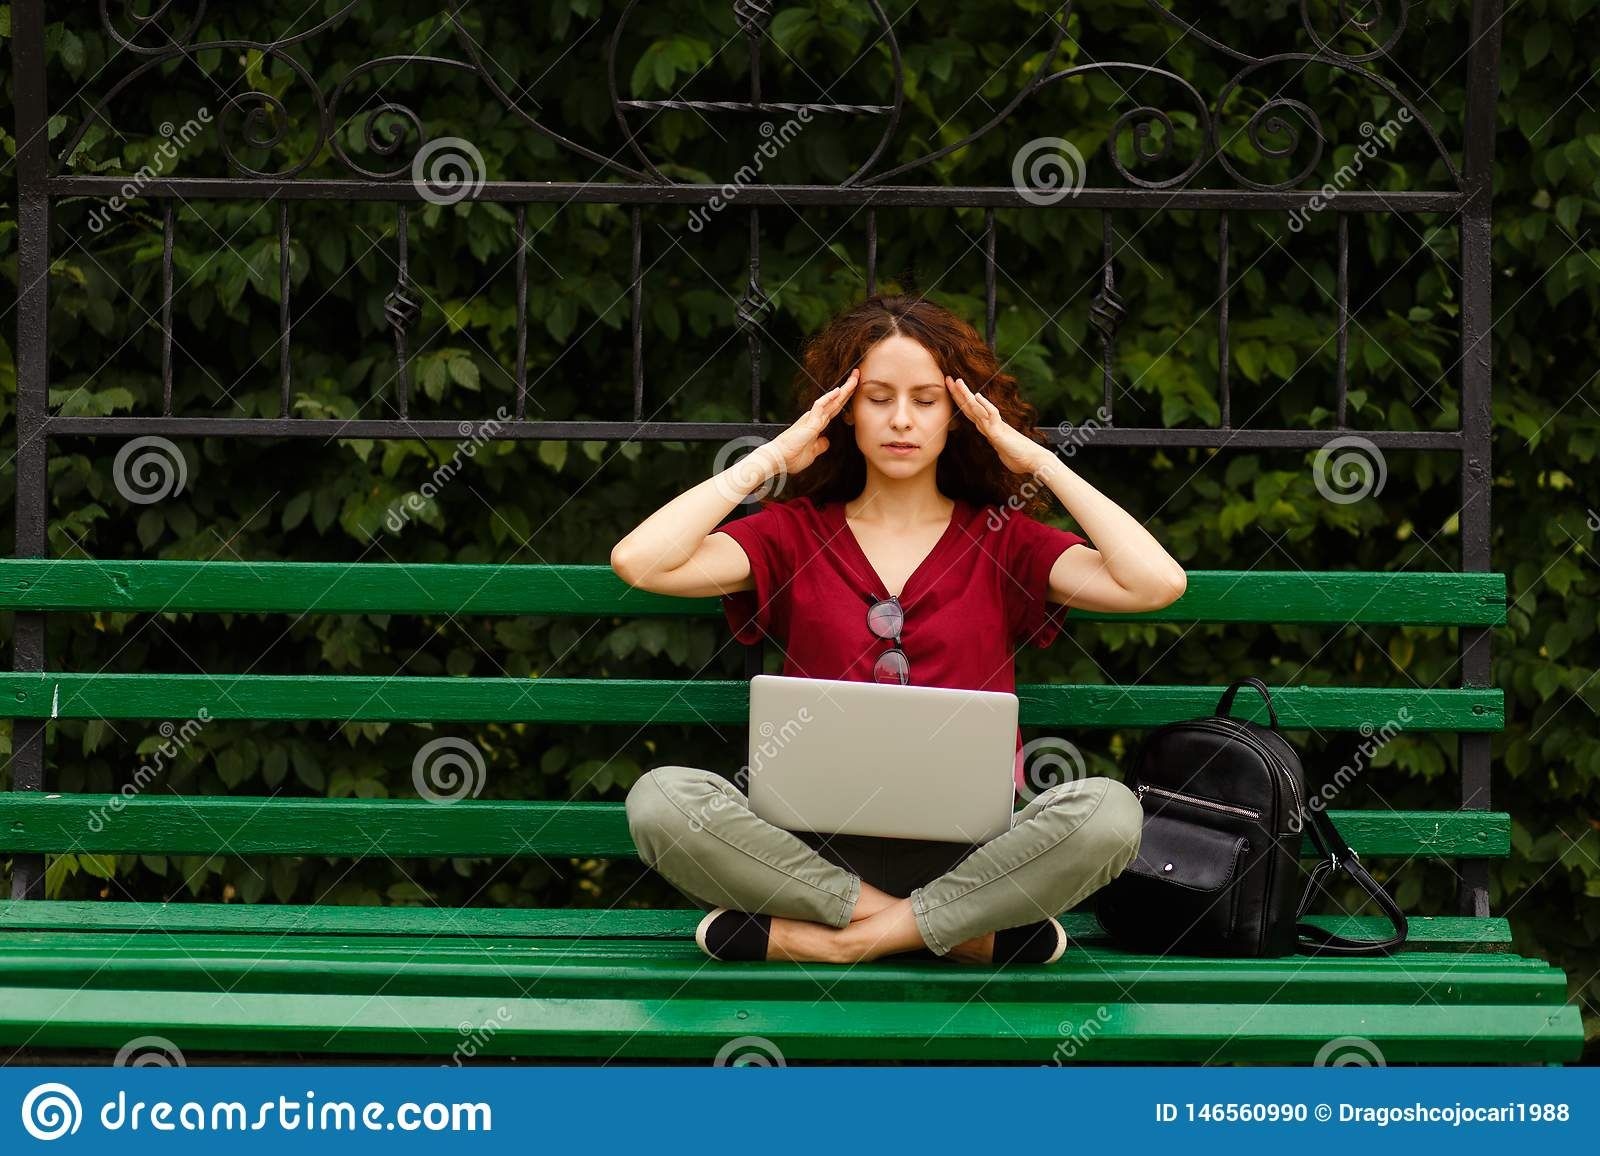 A curly young woman with closed eyes, working on a laptop, seated on a green bench in park touche her temples.